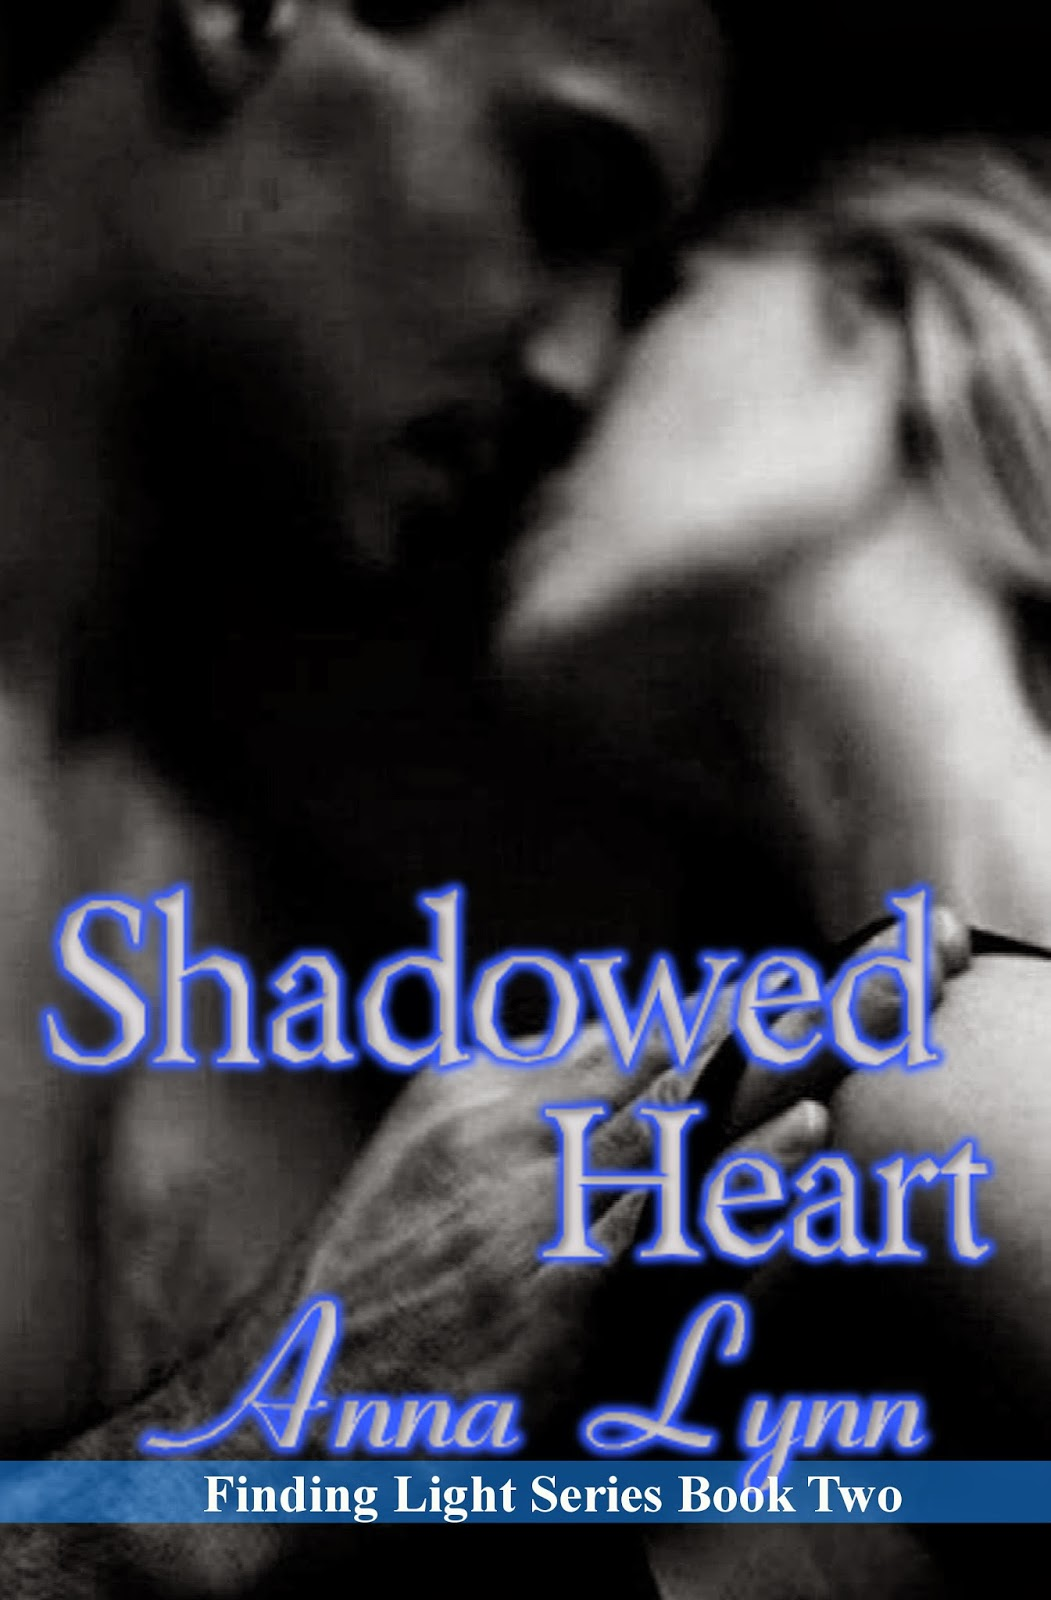 book cover art for Shadowed Heart by Anna Lynn